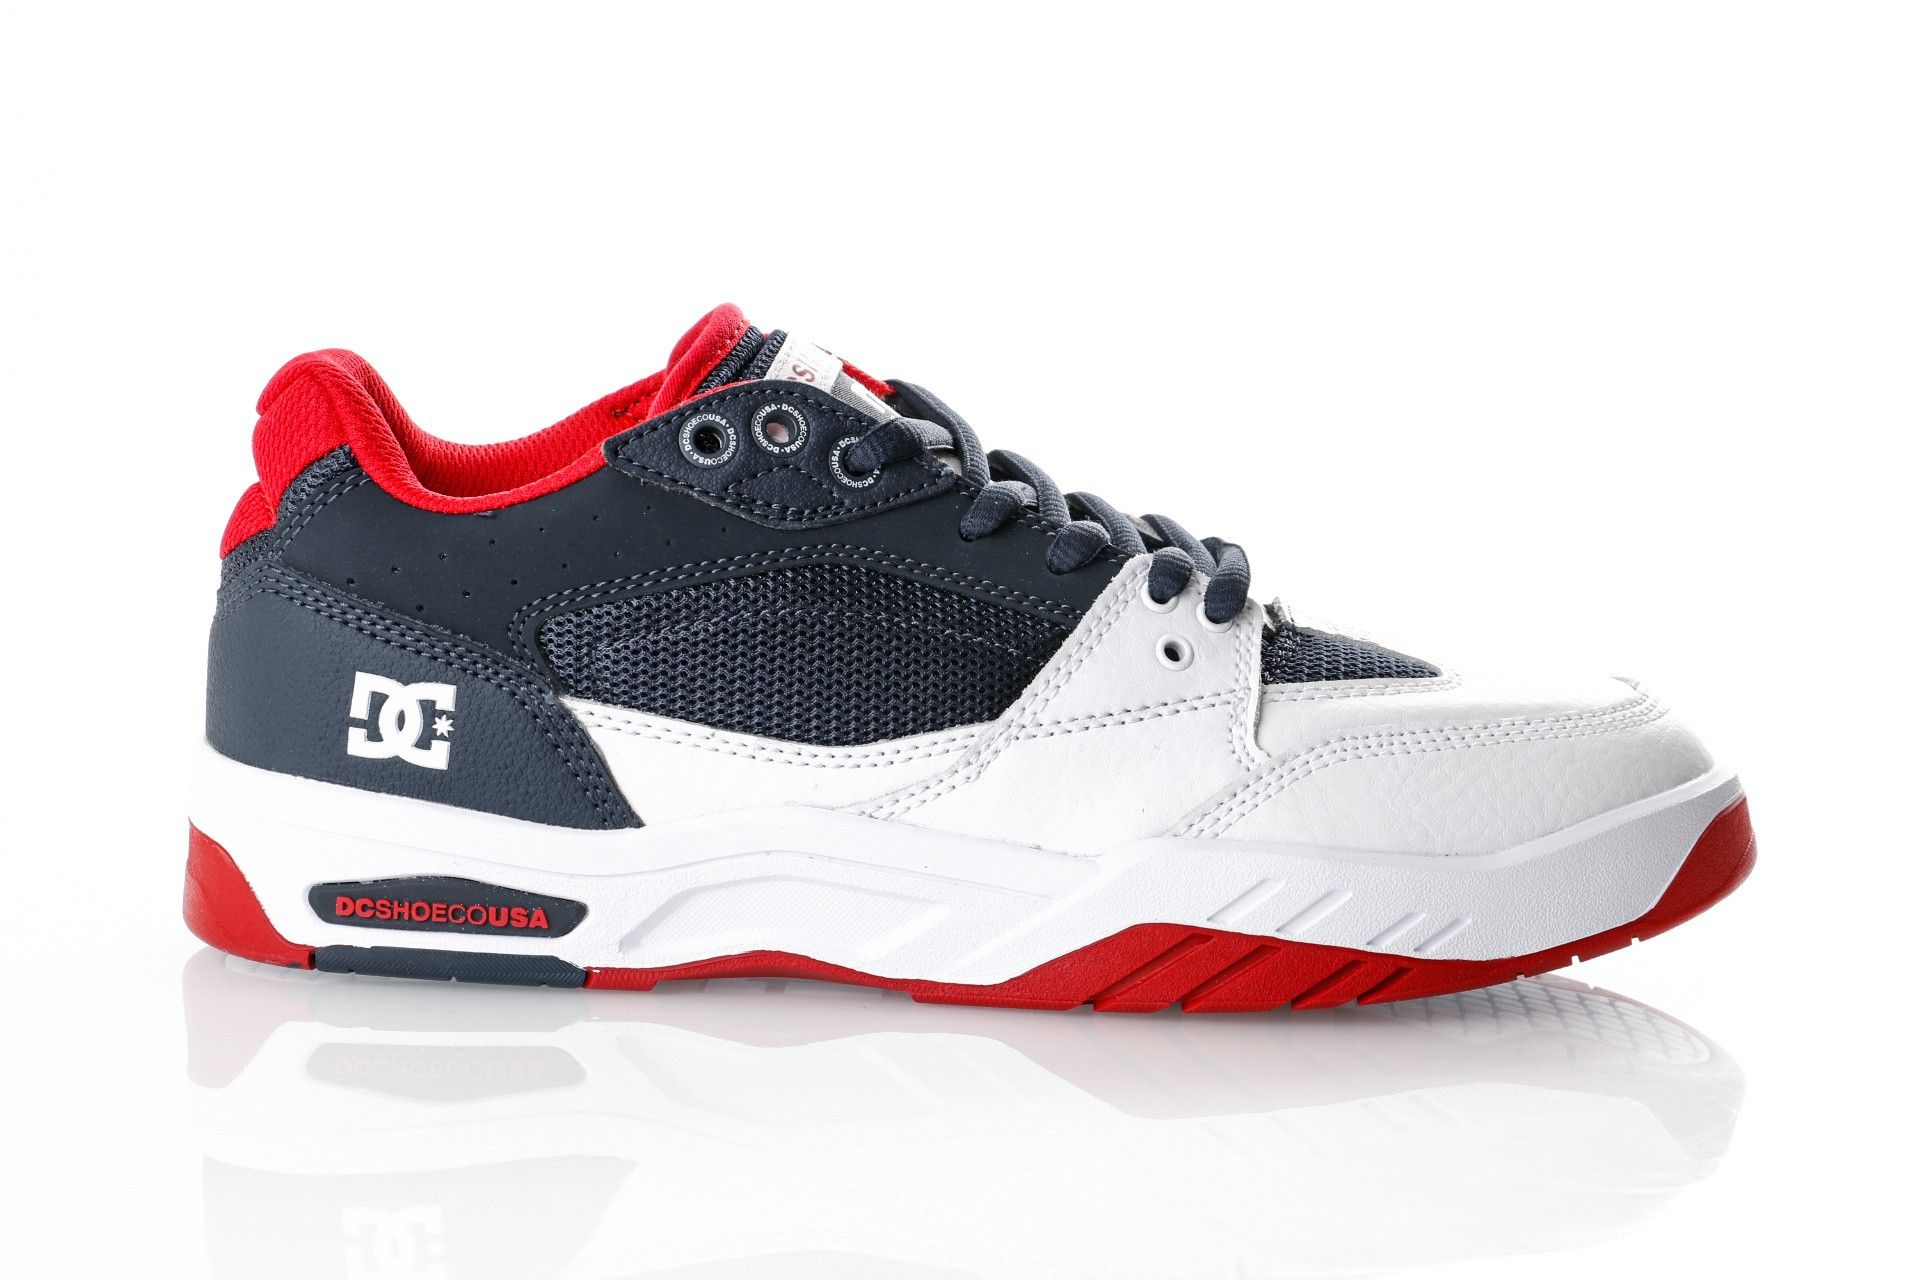 Afbeelding van Dc Maswell M Shoe Nvw Adys100473-Nvw Sneakers Navy White